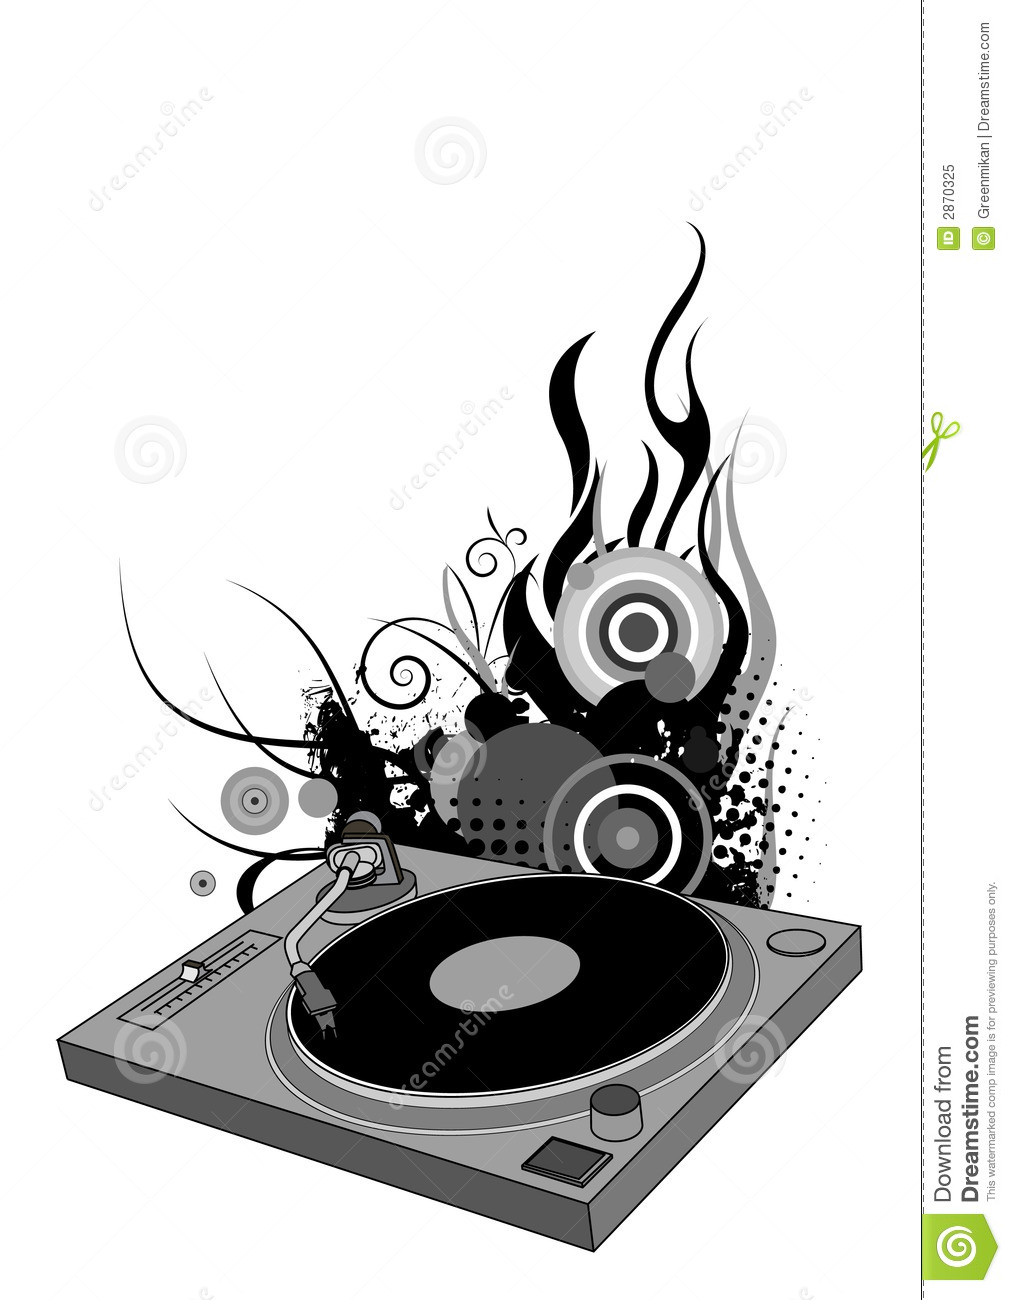 DJ Turntable Royalty Free Stock Photo - Image: 2870325